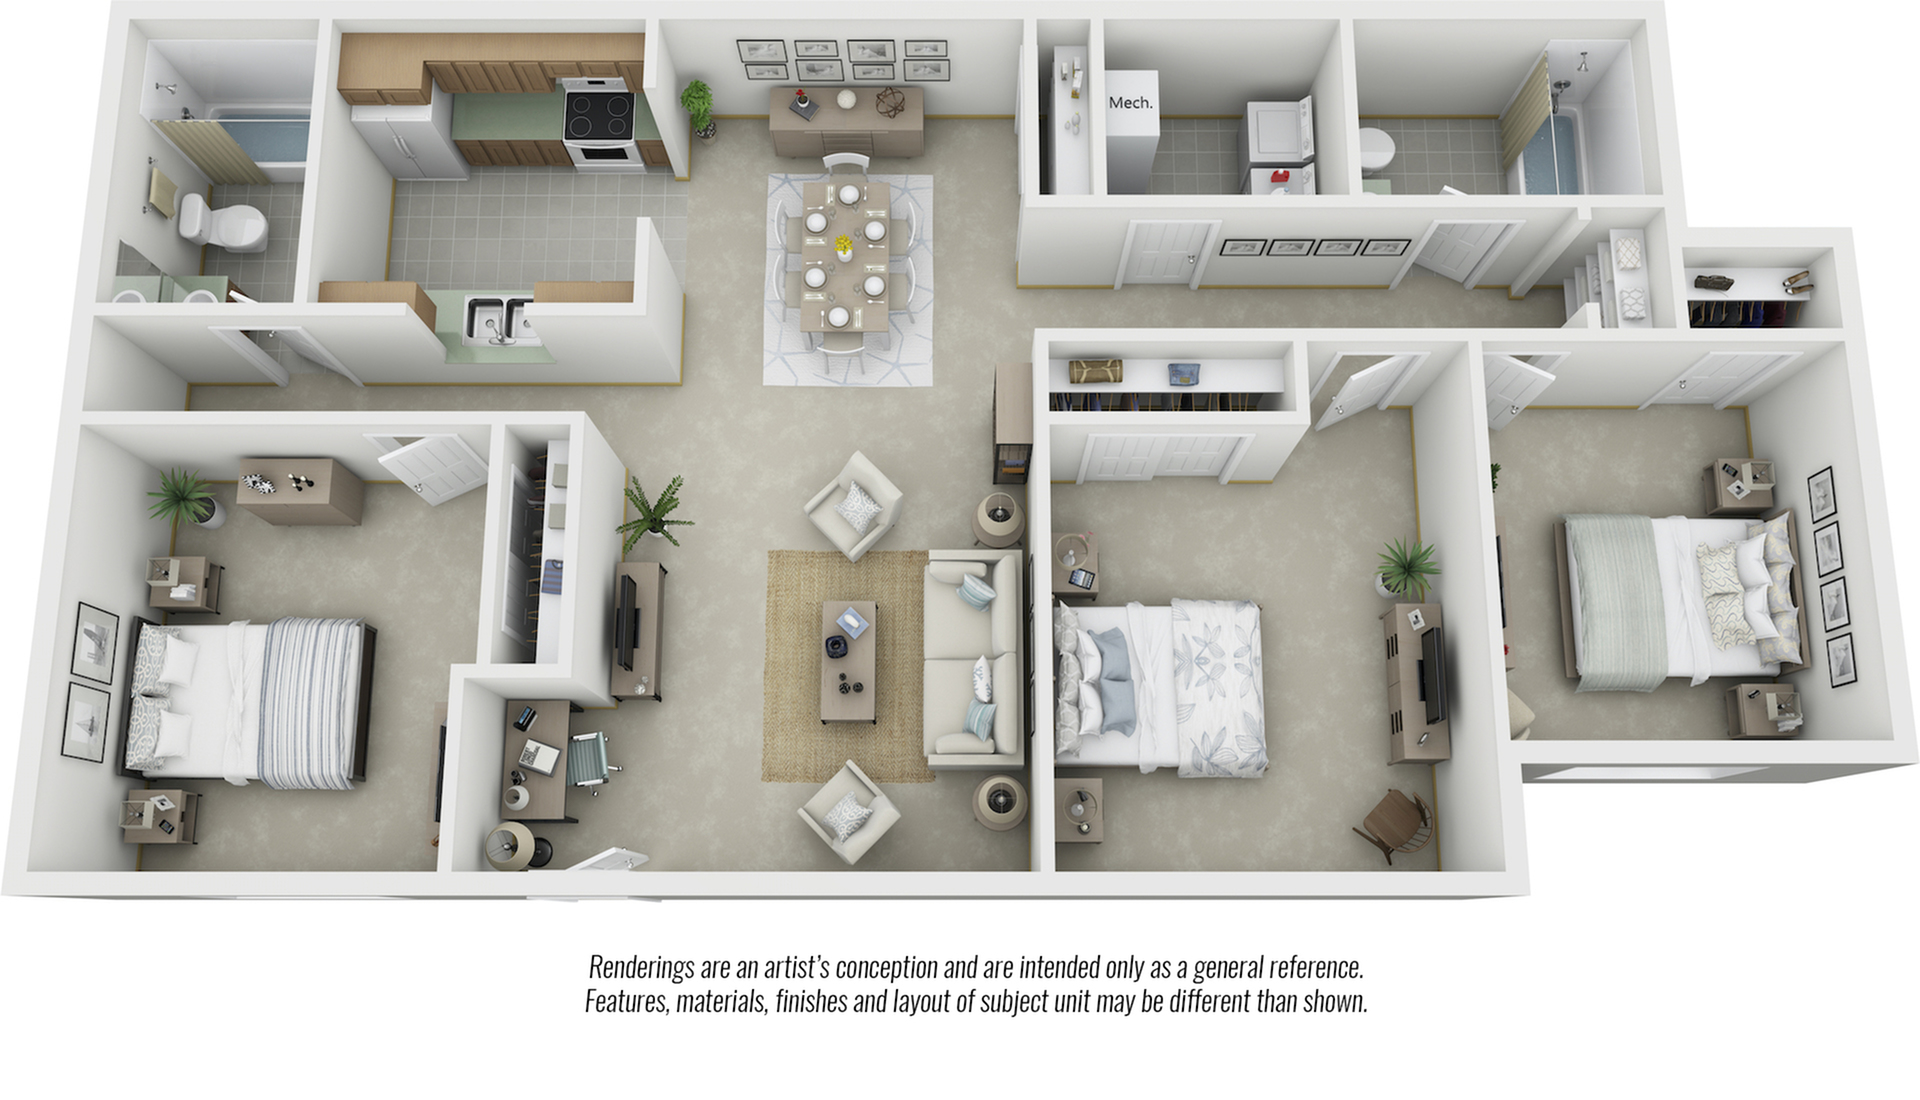 Belmont 3 bedrooms and 2 bathrooms floor plan